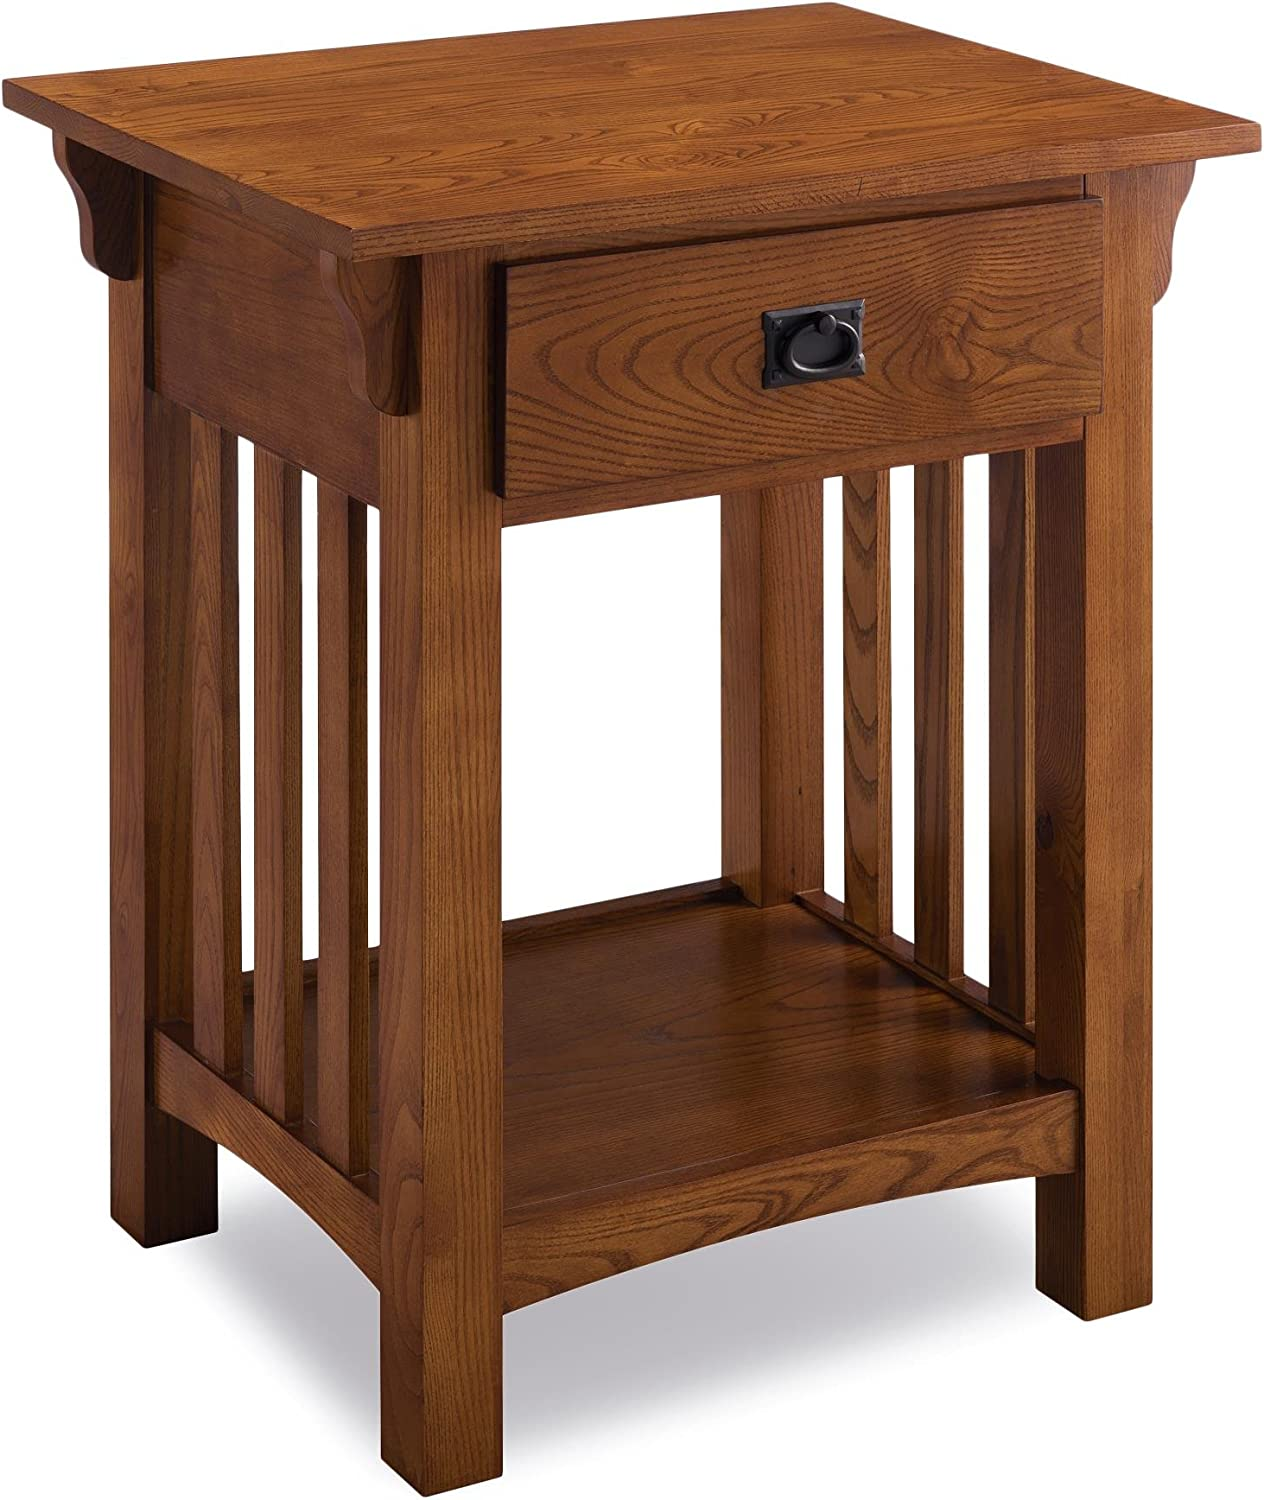 Leick Furniture KD Furnishings Wooden Contemporary Side Table with Drawer